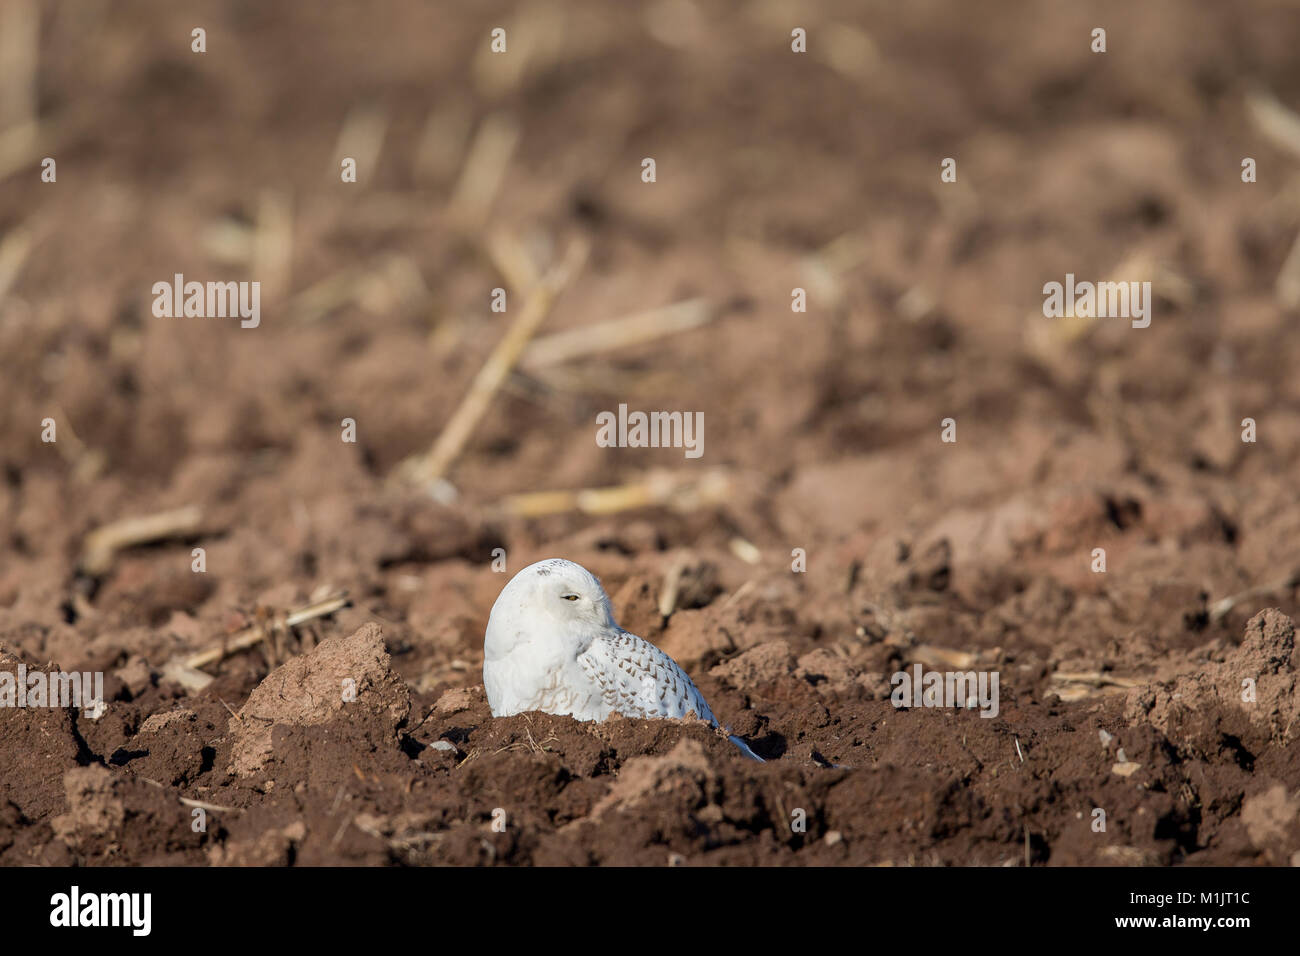 Snowy owl (bubo scandiacus) sitting in a farm field and looking to the right.  Selective focus on the owl.  Plenty - Stock Image